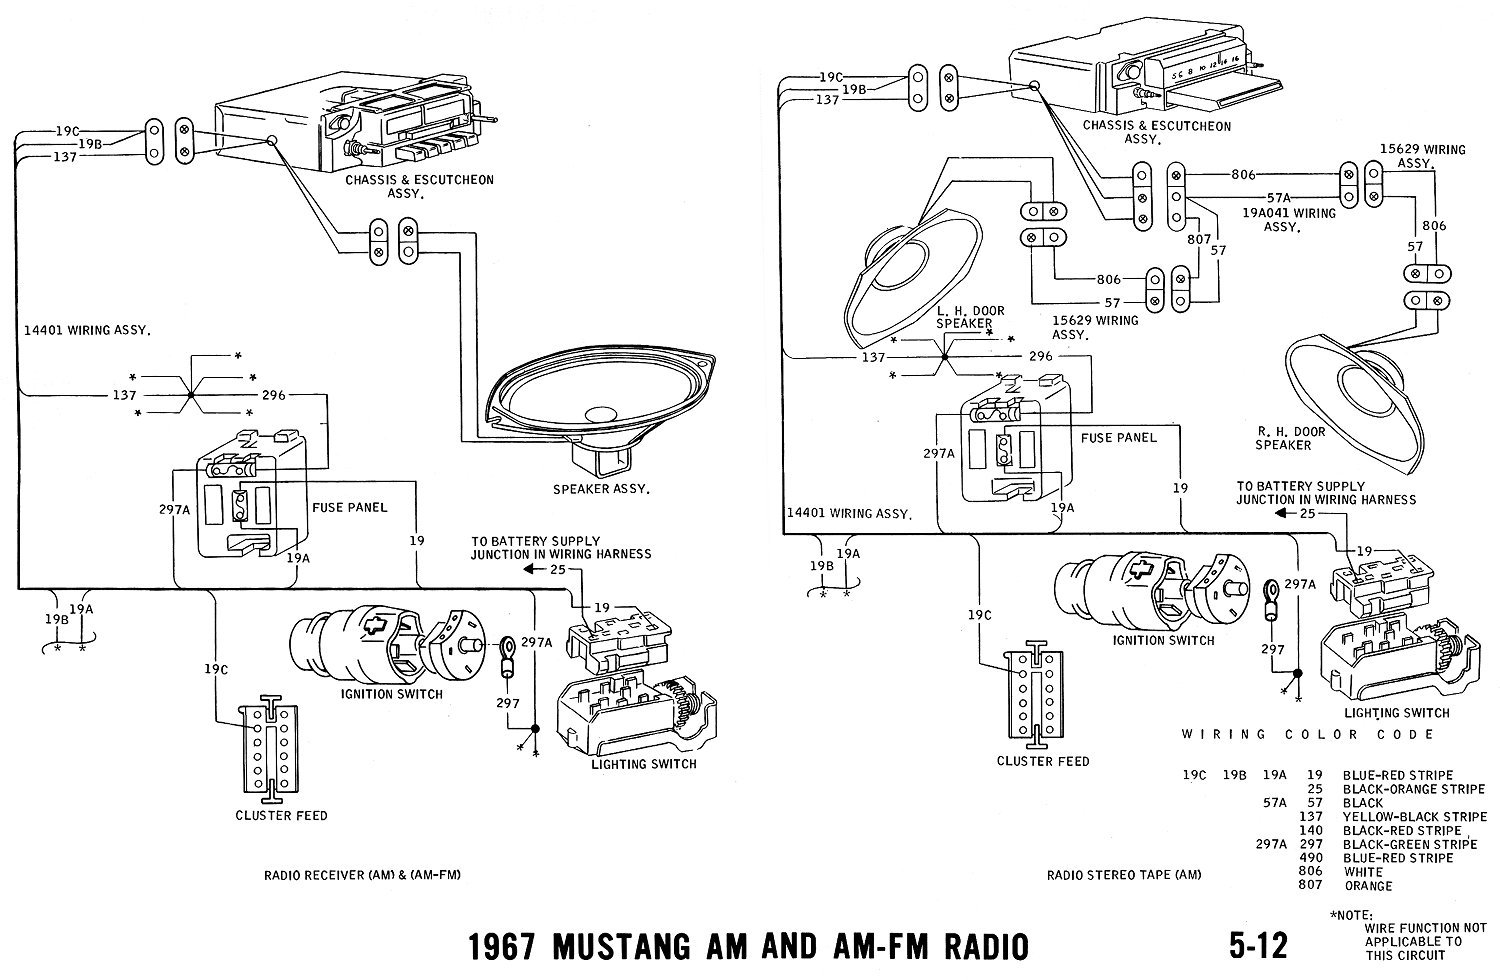 1965 mustang color wiring diagram mustang wiring diagram wiring rh andhaq  tripa co 1967 Mustang Console